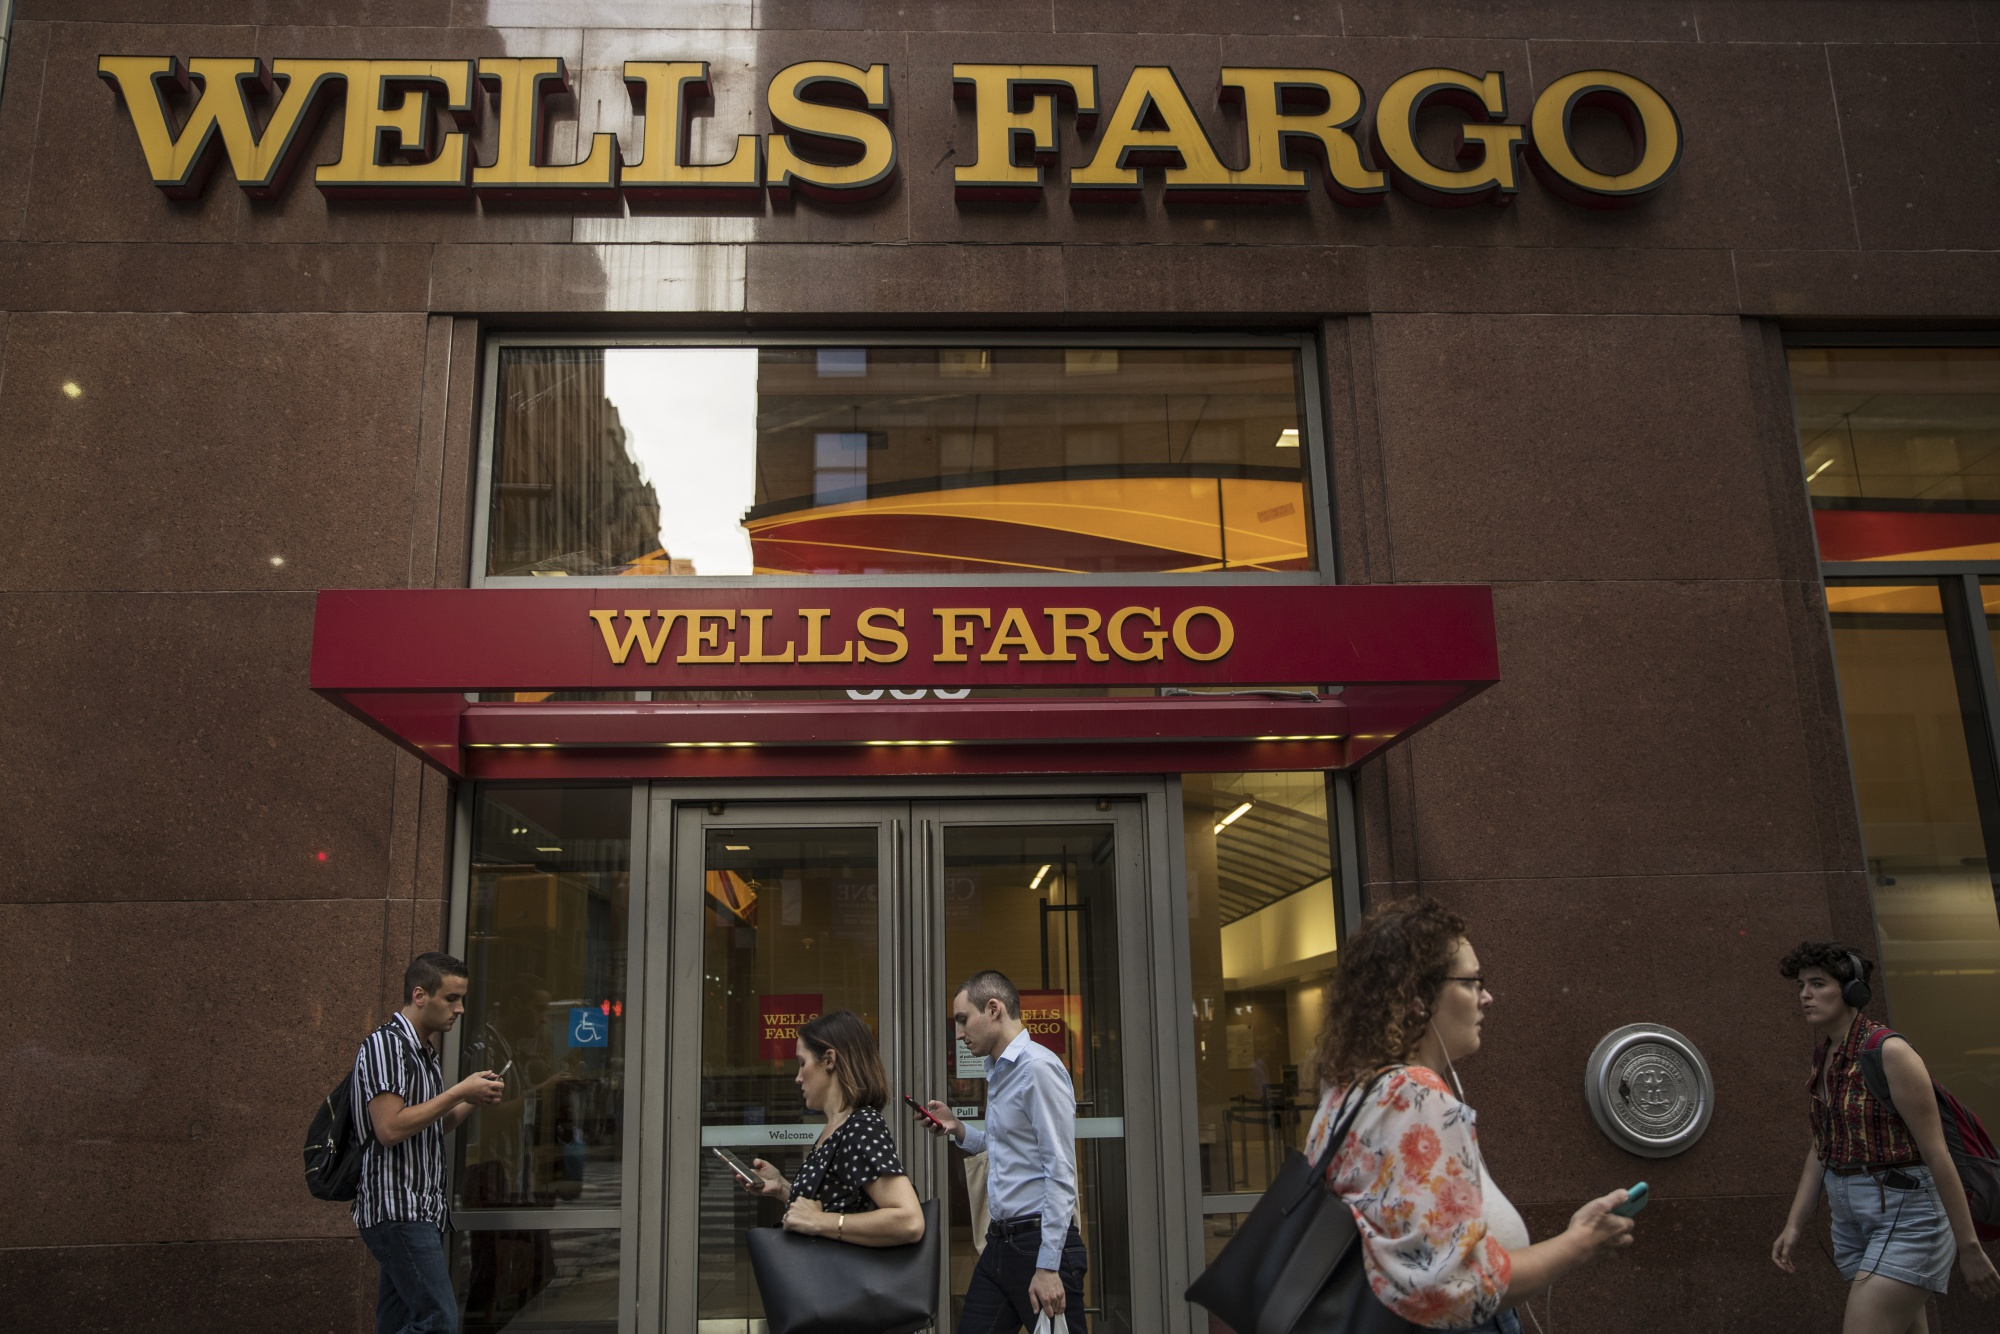 Wells Fargo Wfc Strikes Deal With